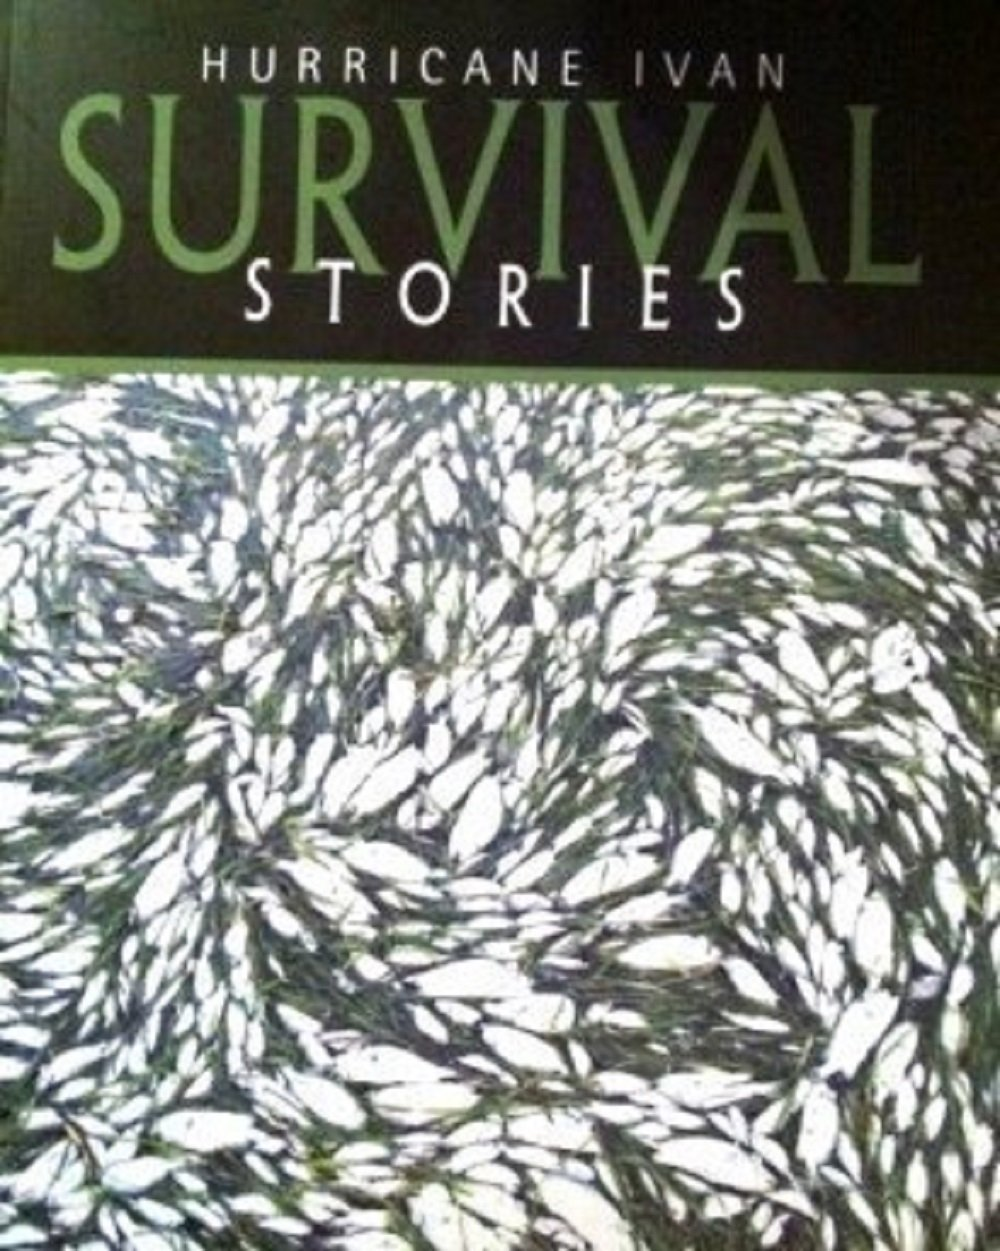 Hurricane Ivan Survival Stories as Told by the People of the Cayman Islands ebook